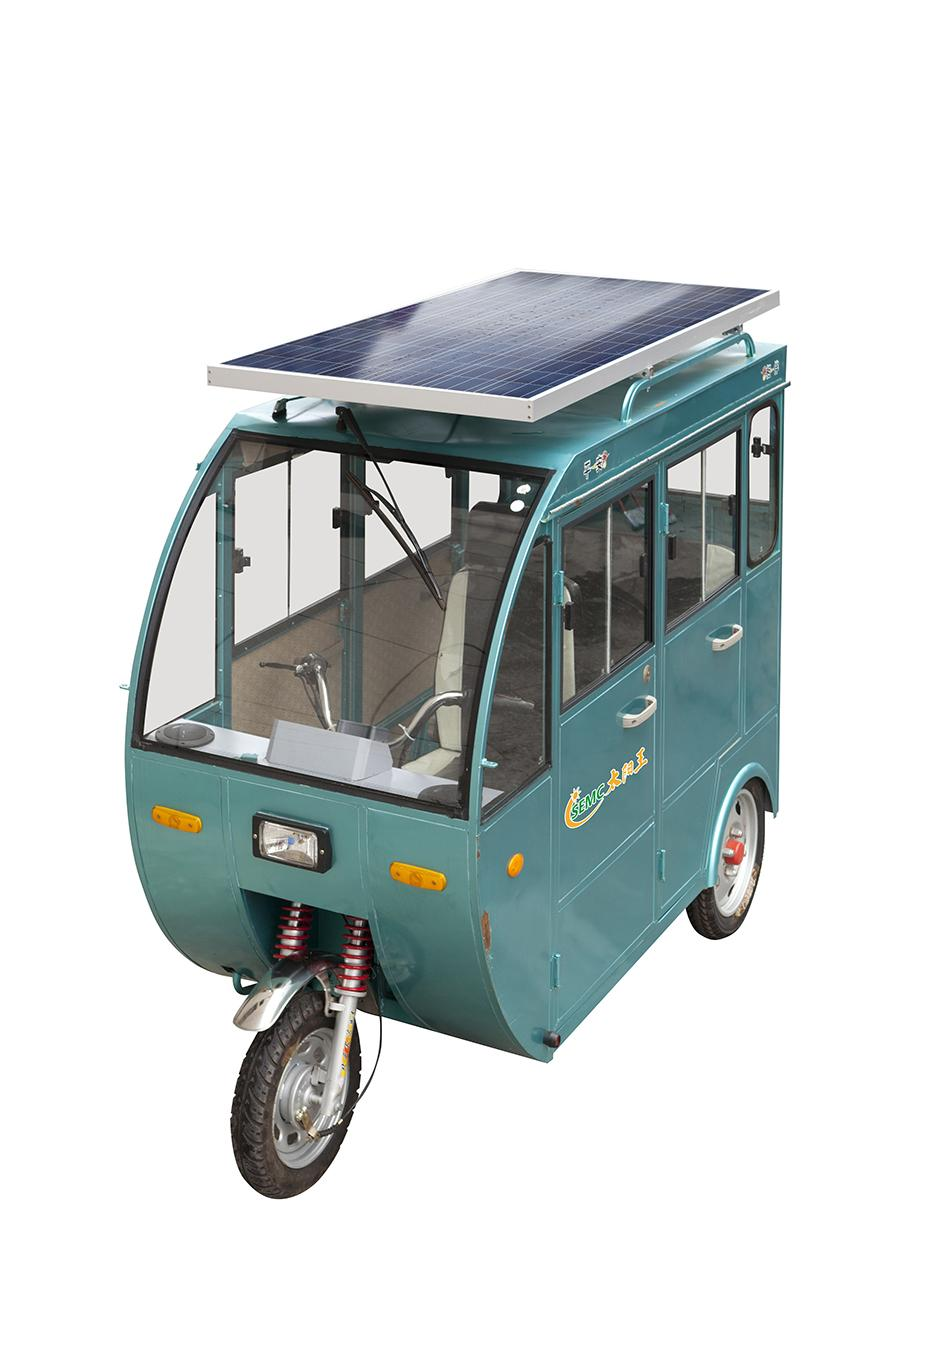 48V electric car solar charging panels 48V solar panels charge the battery 48v electric car battery